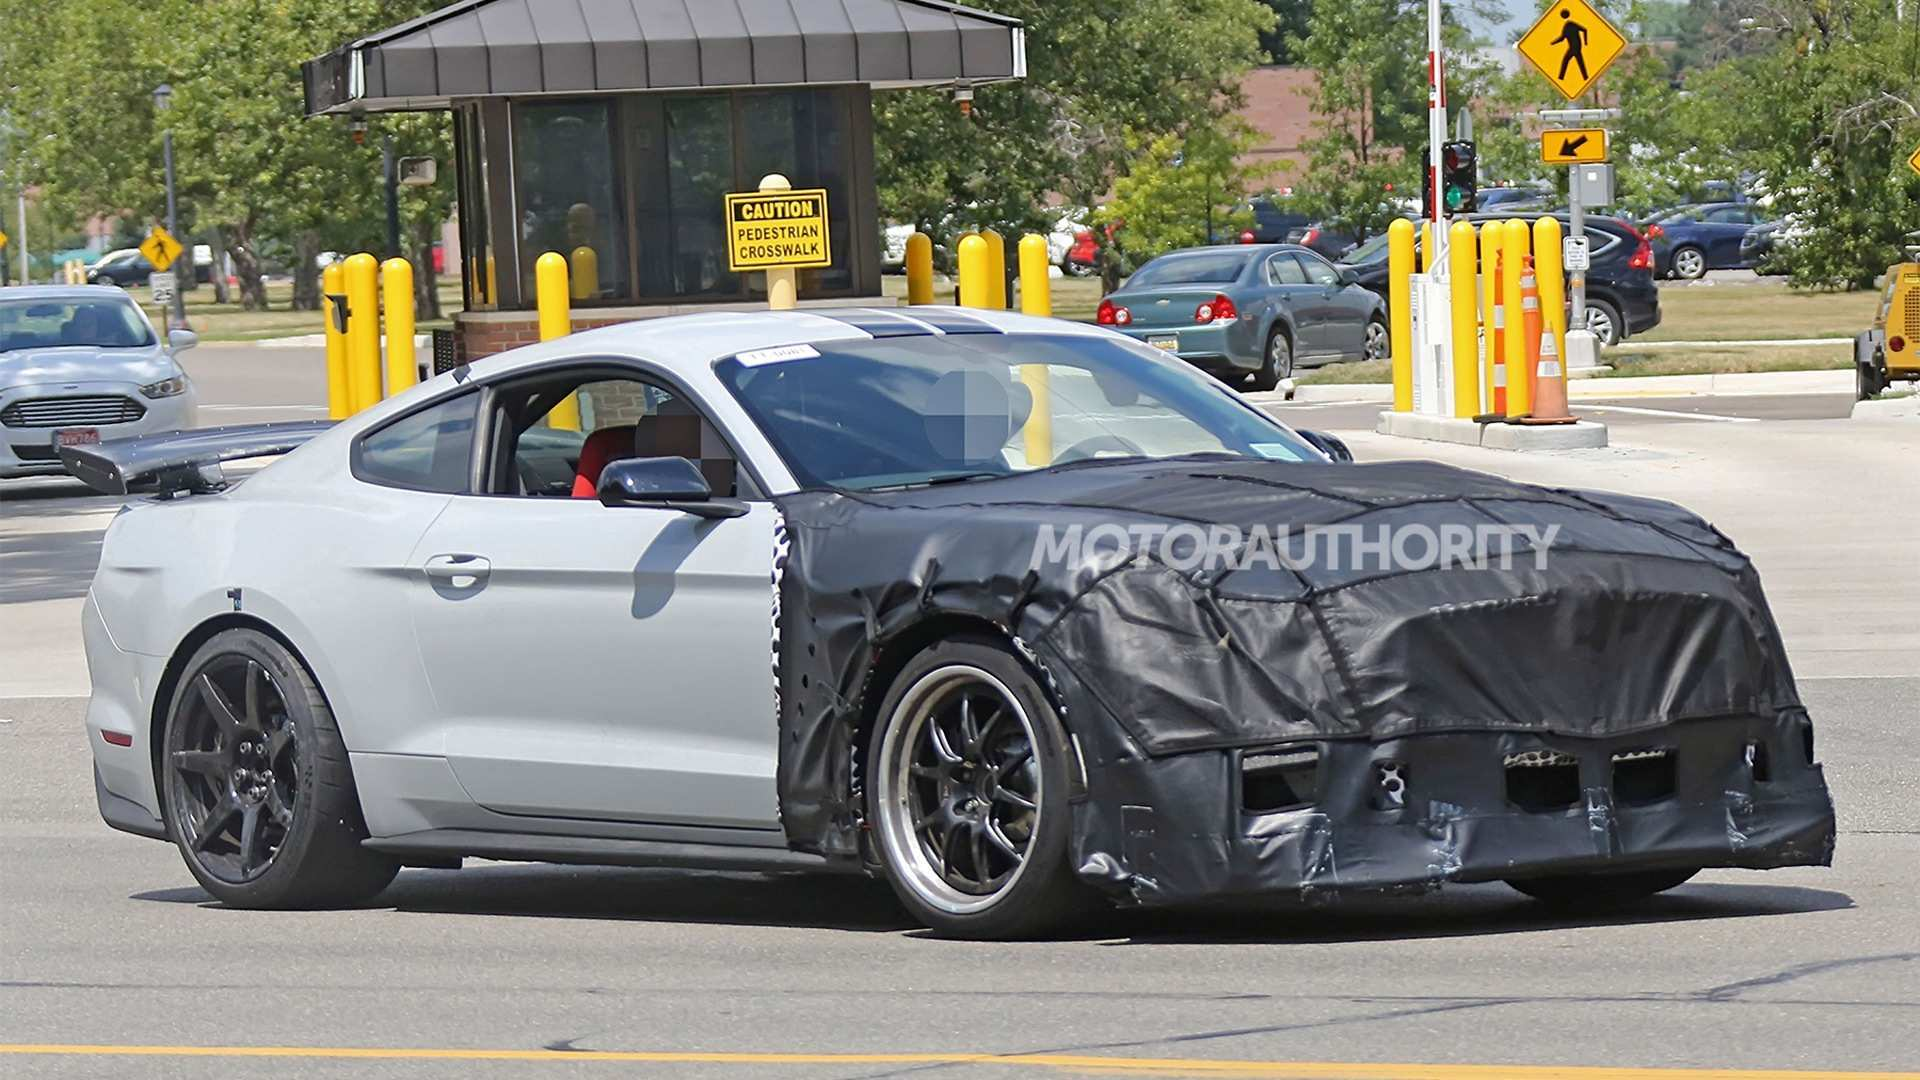 12 Great 2020 The Spy Shots Ford Mustang Svt Gt 500 Exterior and Interior with 2020 The Spy Shots Ford Mustang Svt Gt 500